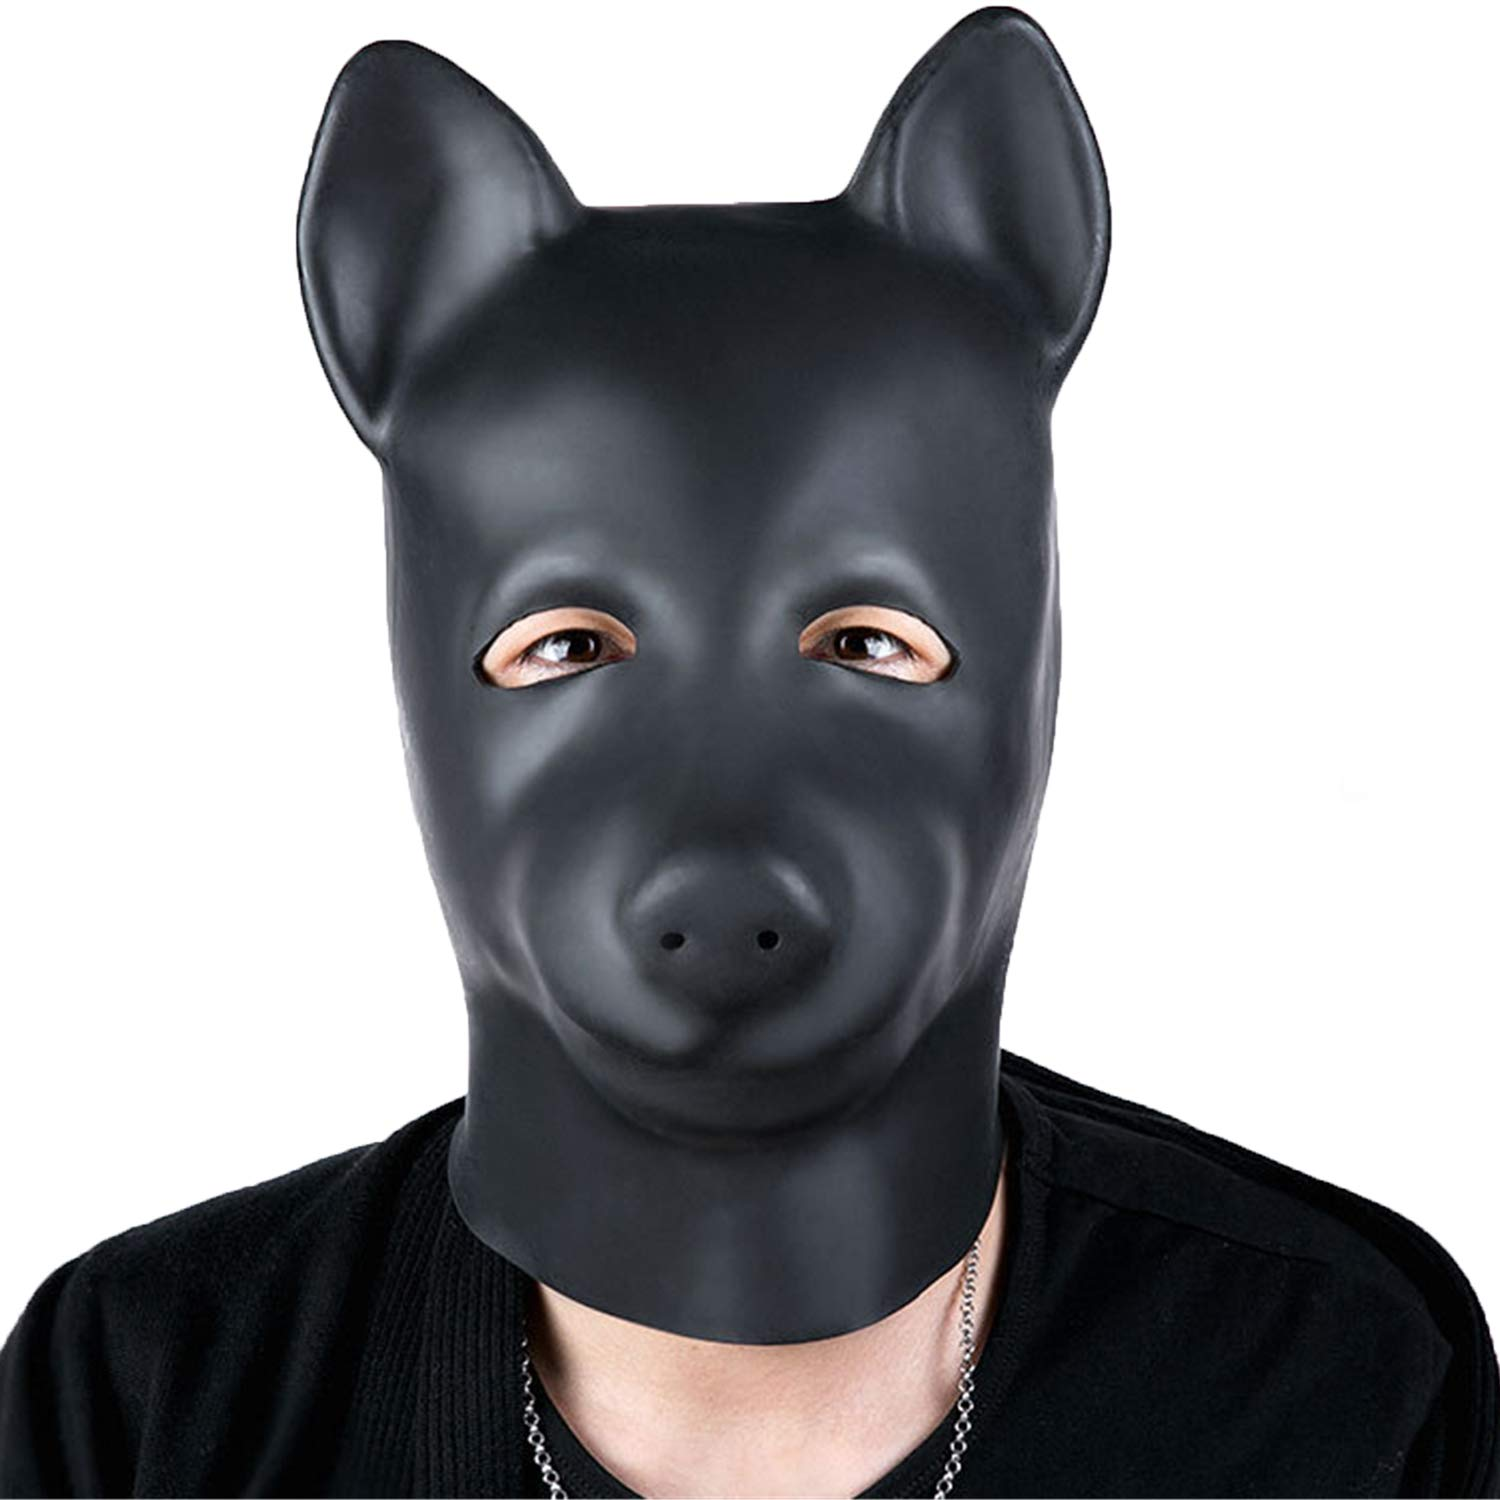 Latex Bondage Gimp Puppy Mask, Black Full Face Blindfold Breathable Restraint Head Hood, Sex Toys, for Unisex Adults Couples, BDSM/LGBT Cosplay Halloween Masquerade Mask by Aaijia